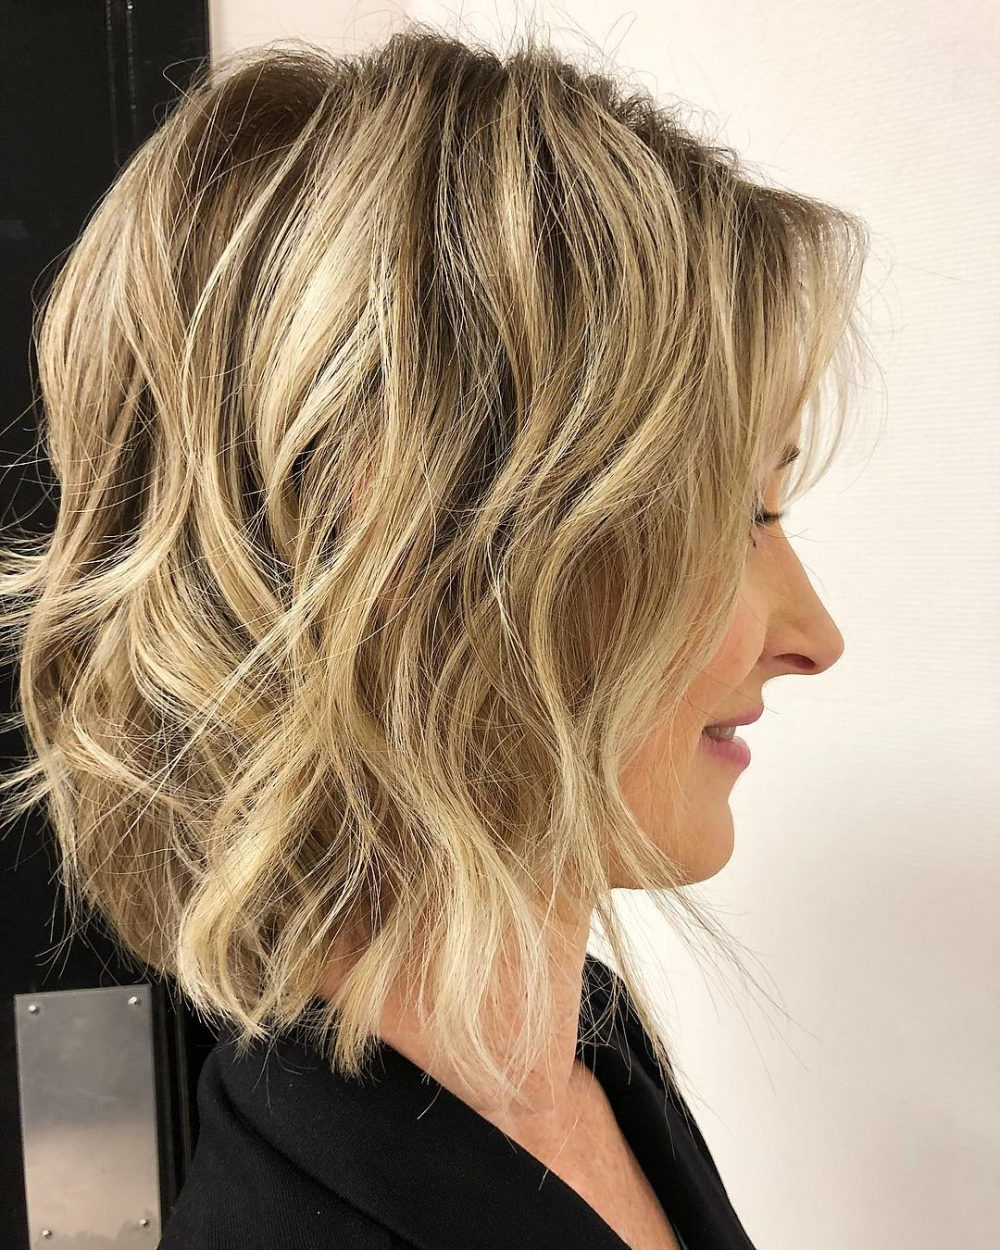 43 Perfect Short Hairstyles For Fine Hair In 2018 Throughout Tousled Beach Bob Hairstyles (View 18 of 20)